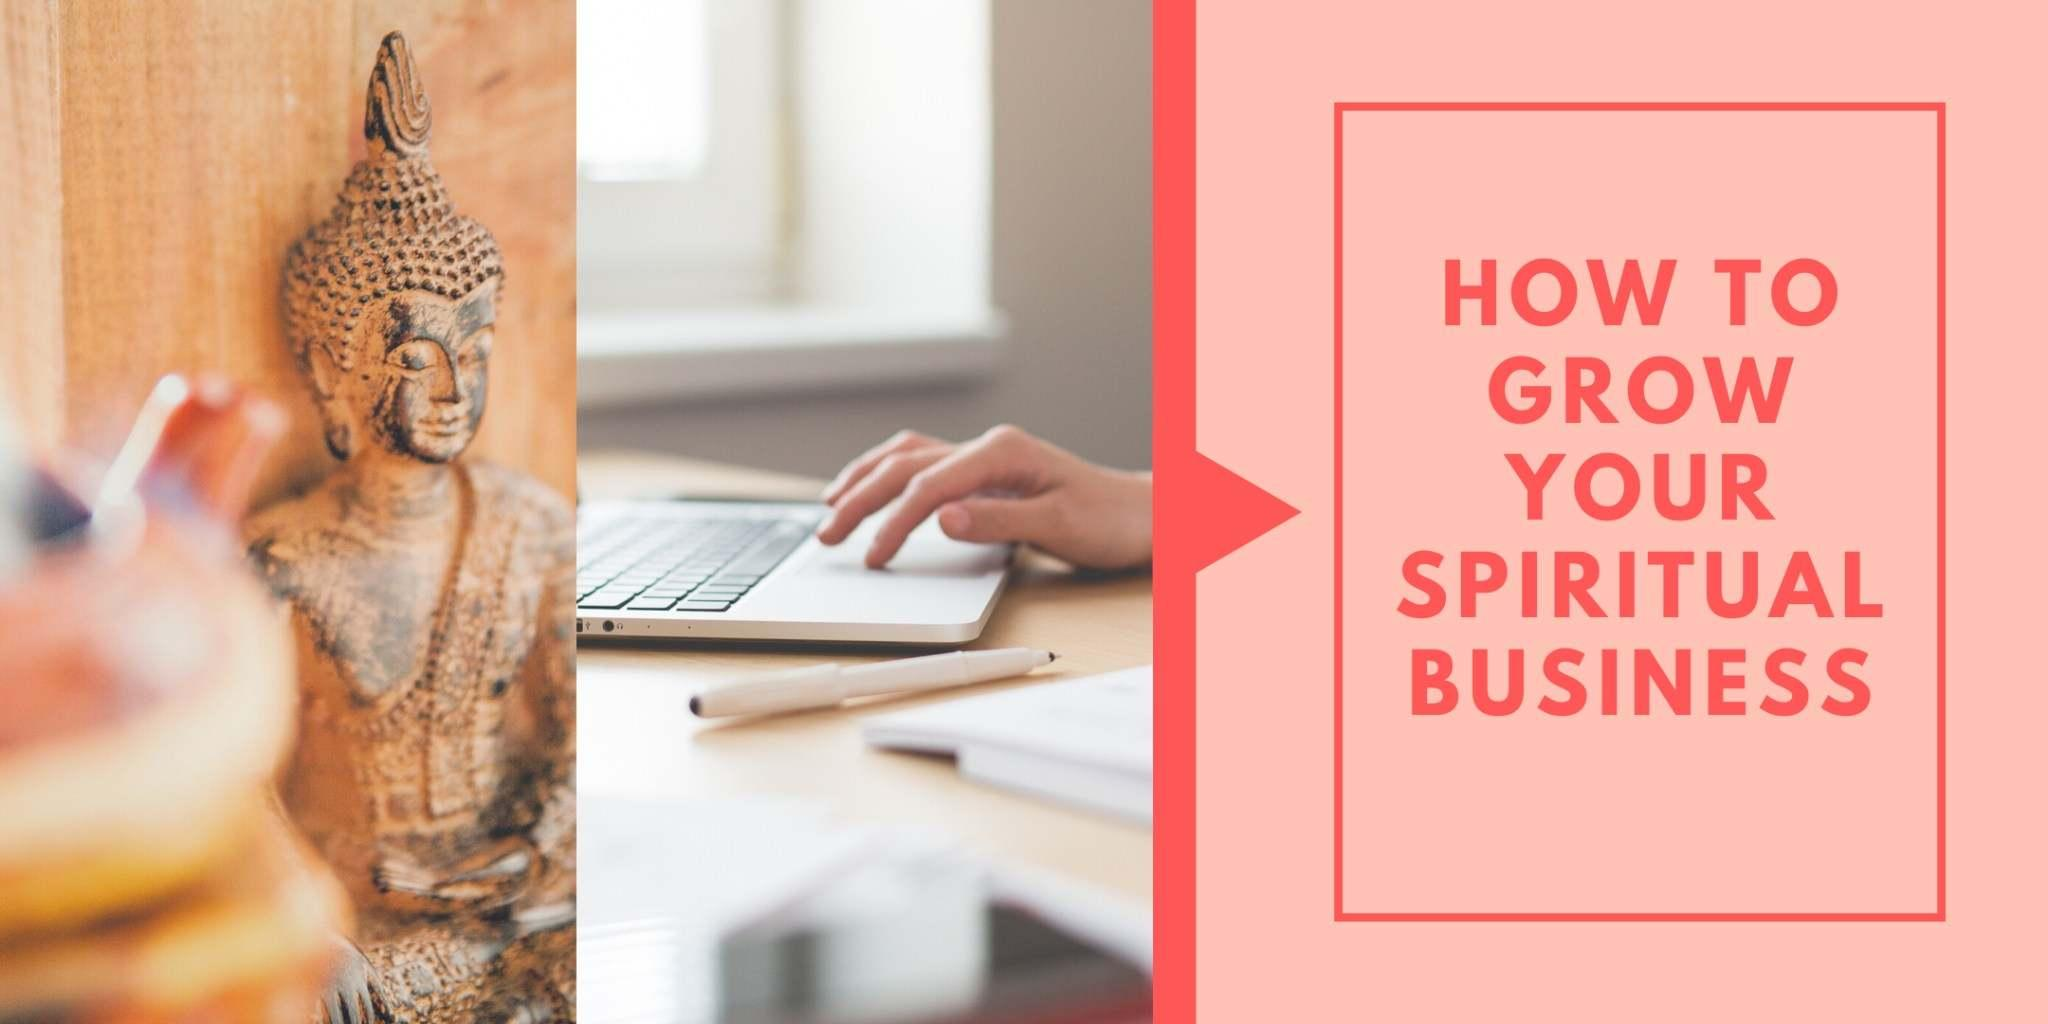 Grow Your Spiritual Business April